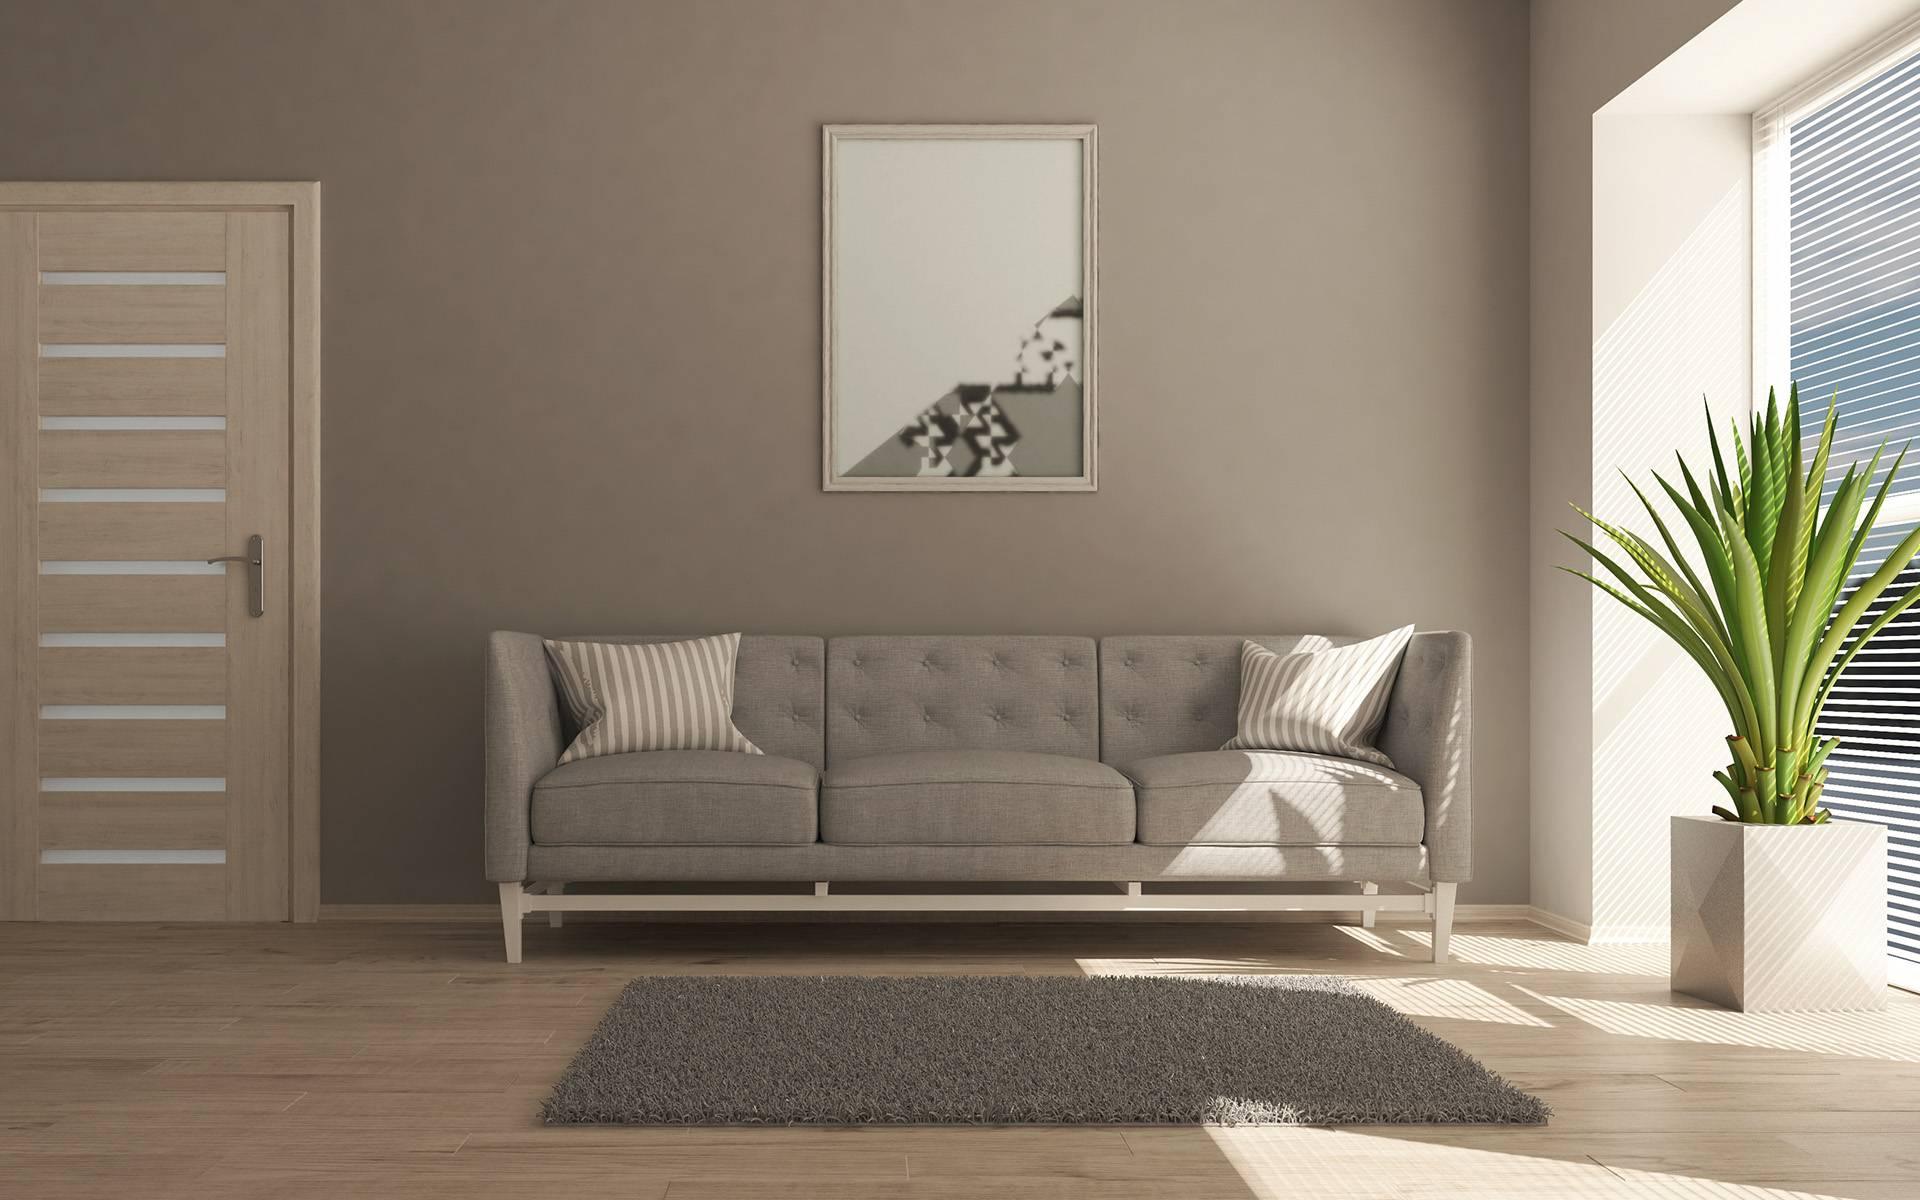 New Style for Your Home